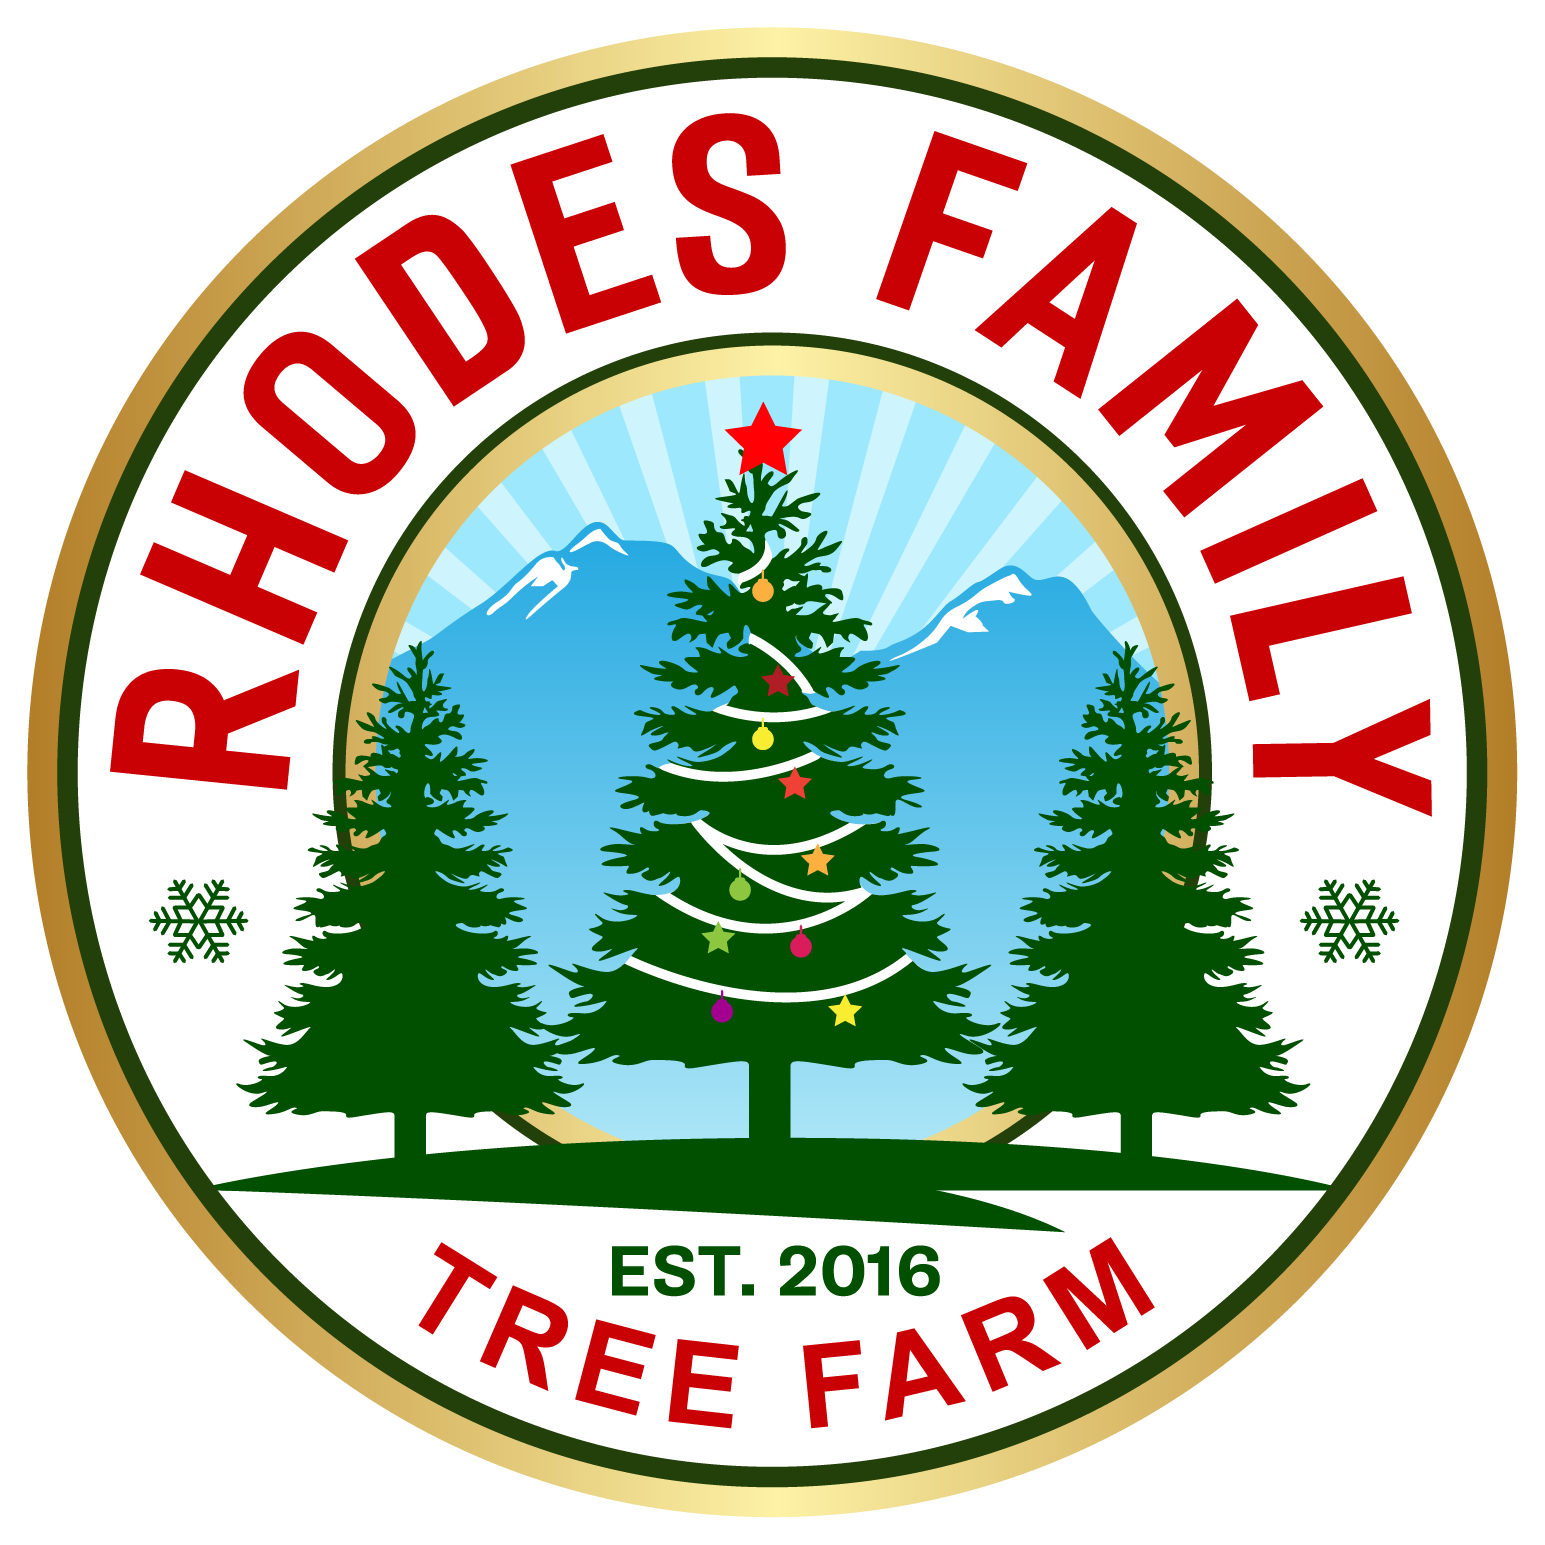 Logo needed for new family Christmas Tree farm located in California mountains